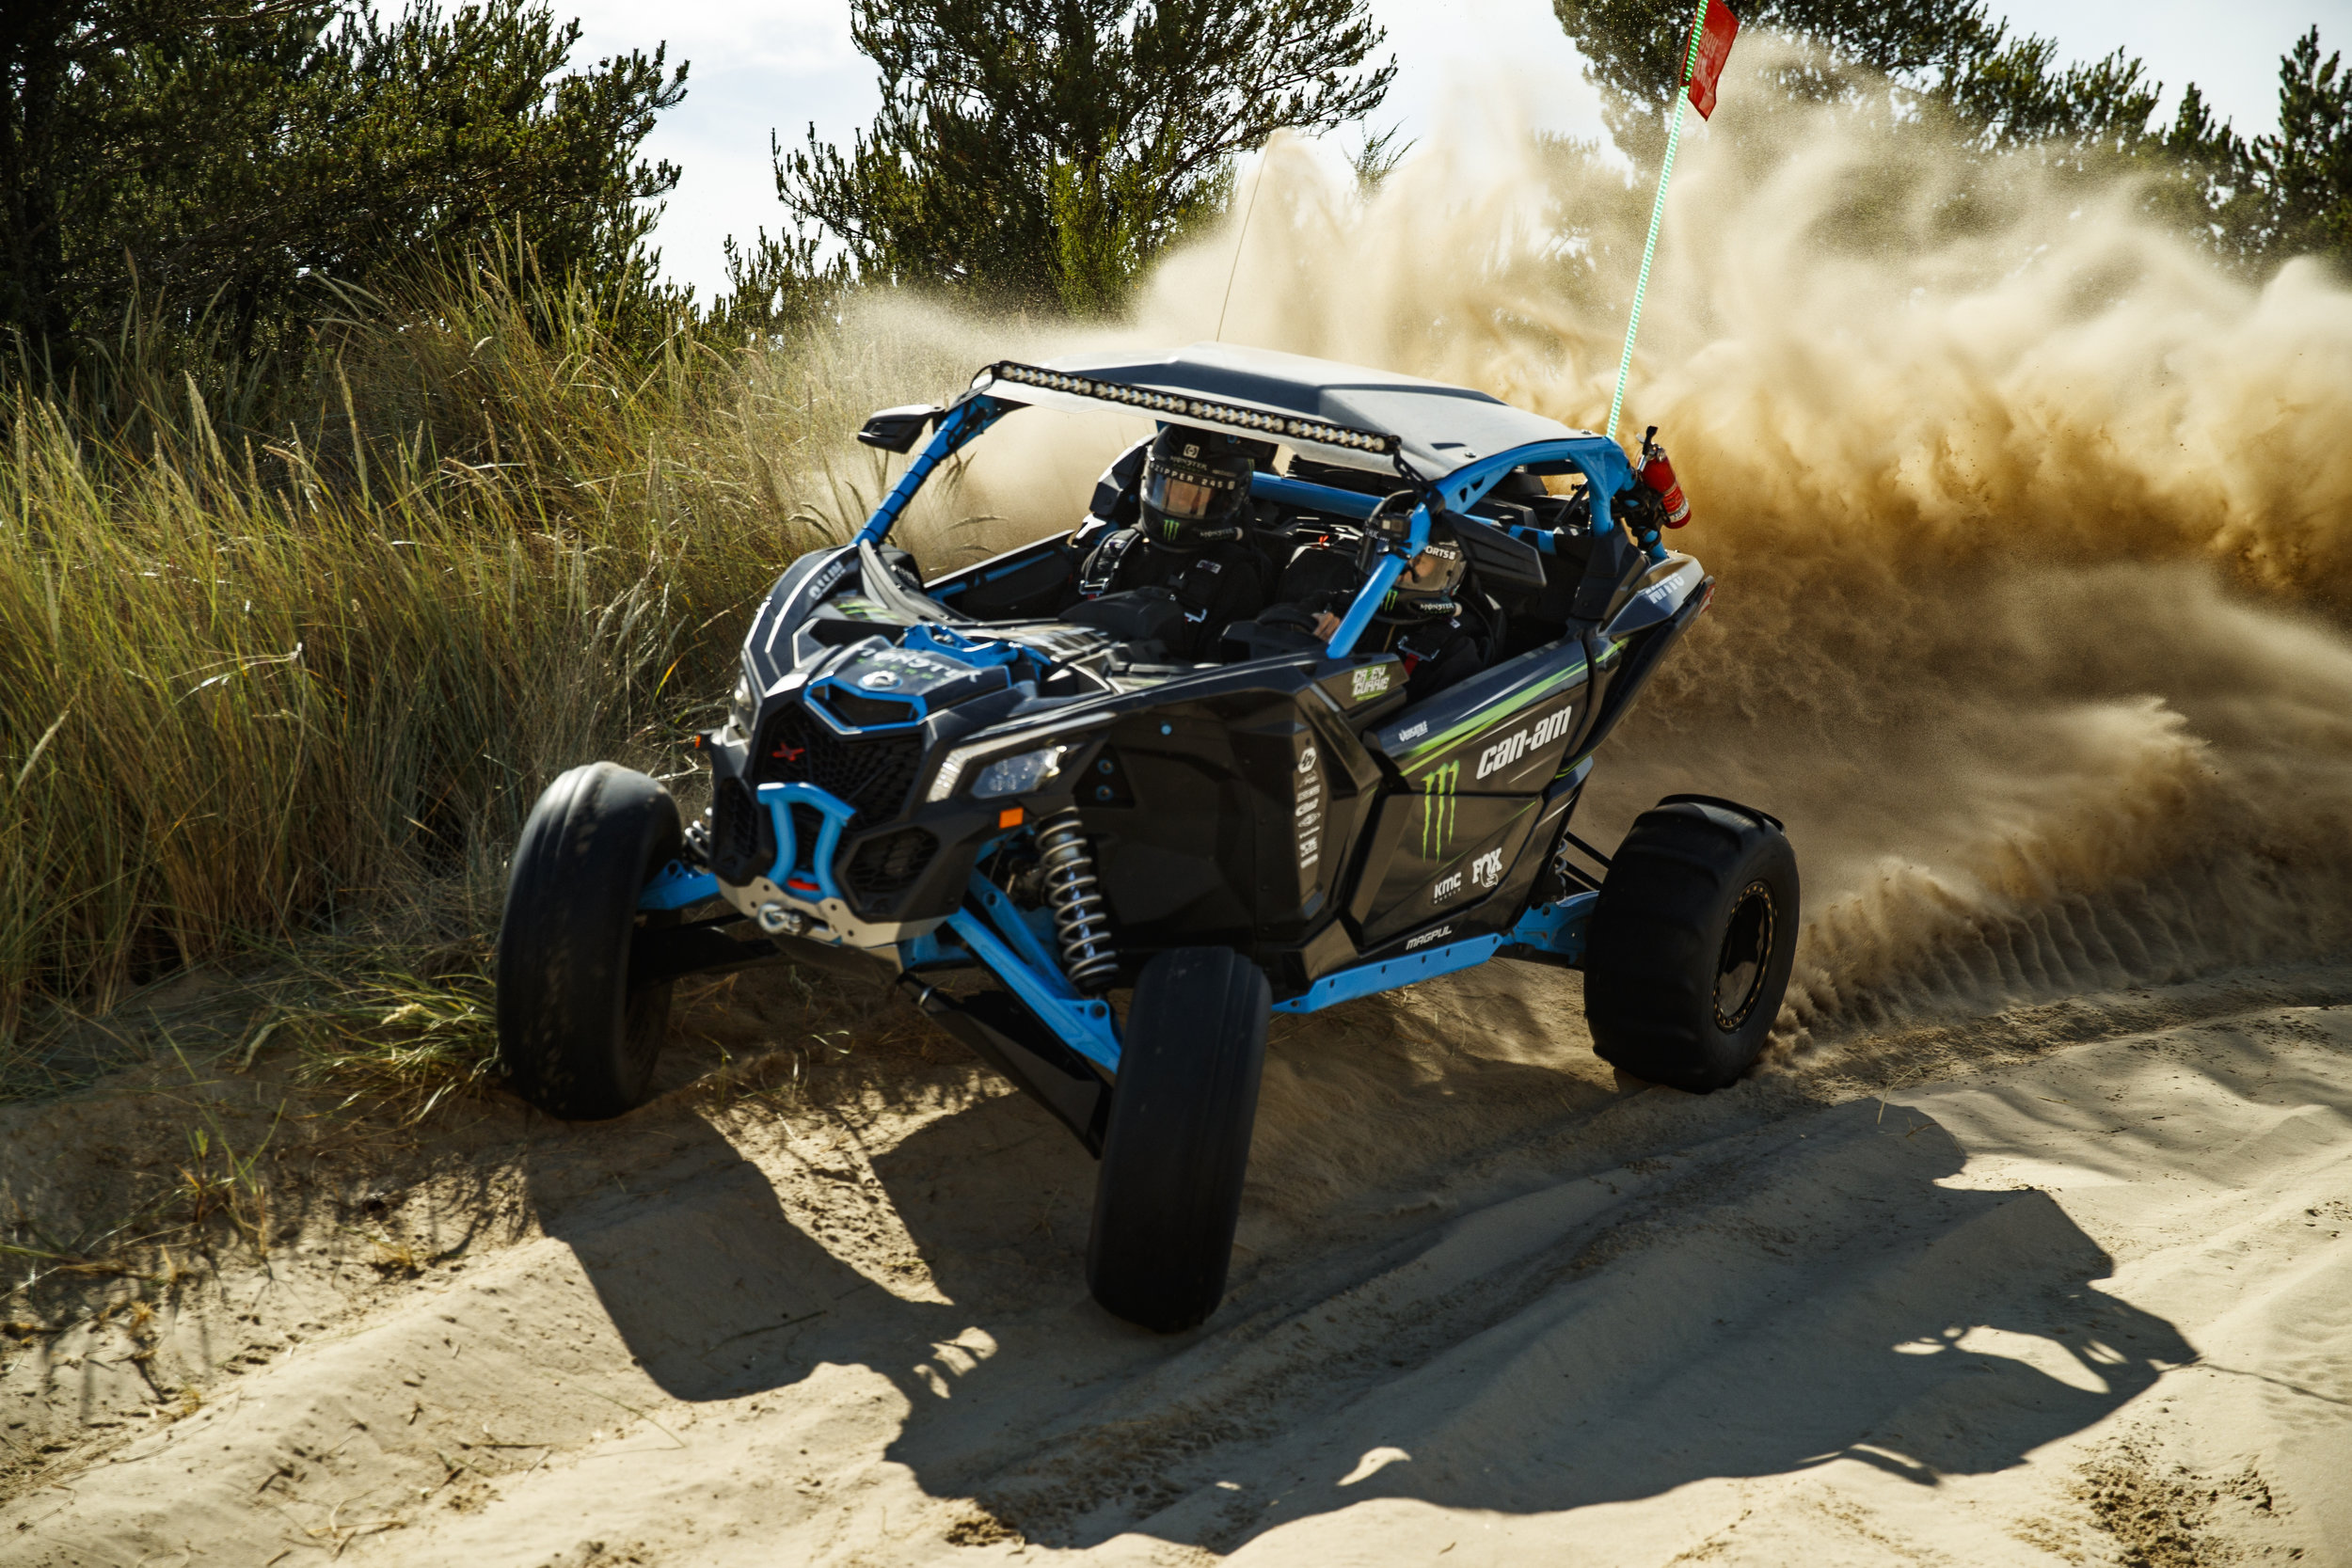 CaseyCurrie_UTVTakeover_CoosBay_Oregon_Can-Am_018.jpg